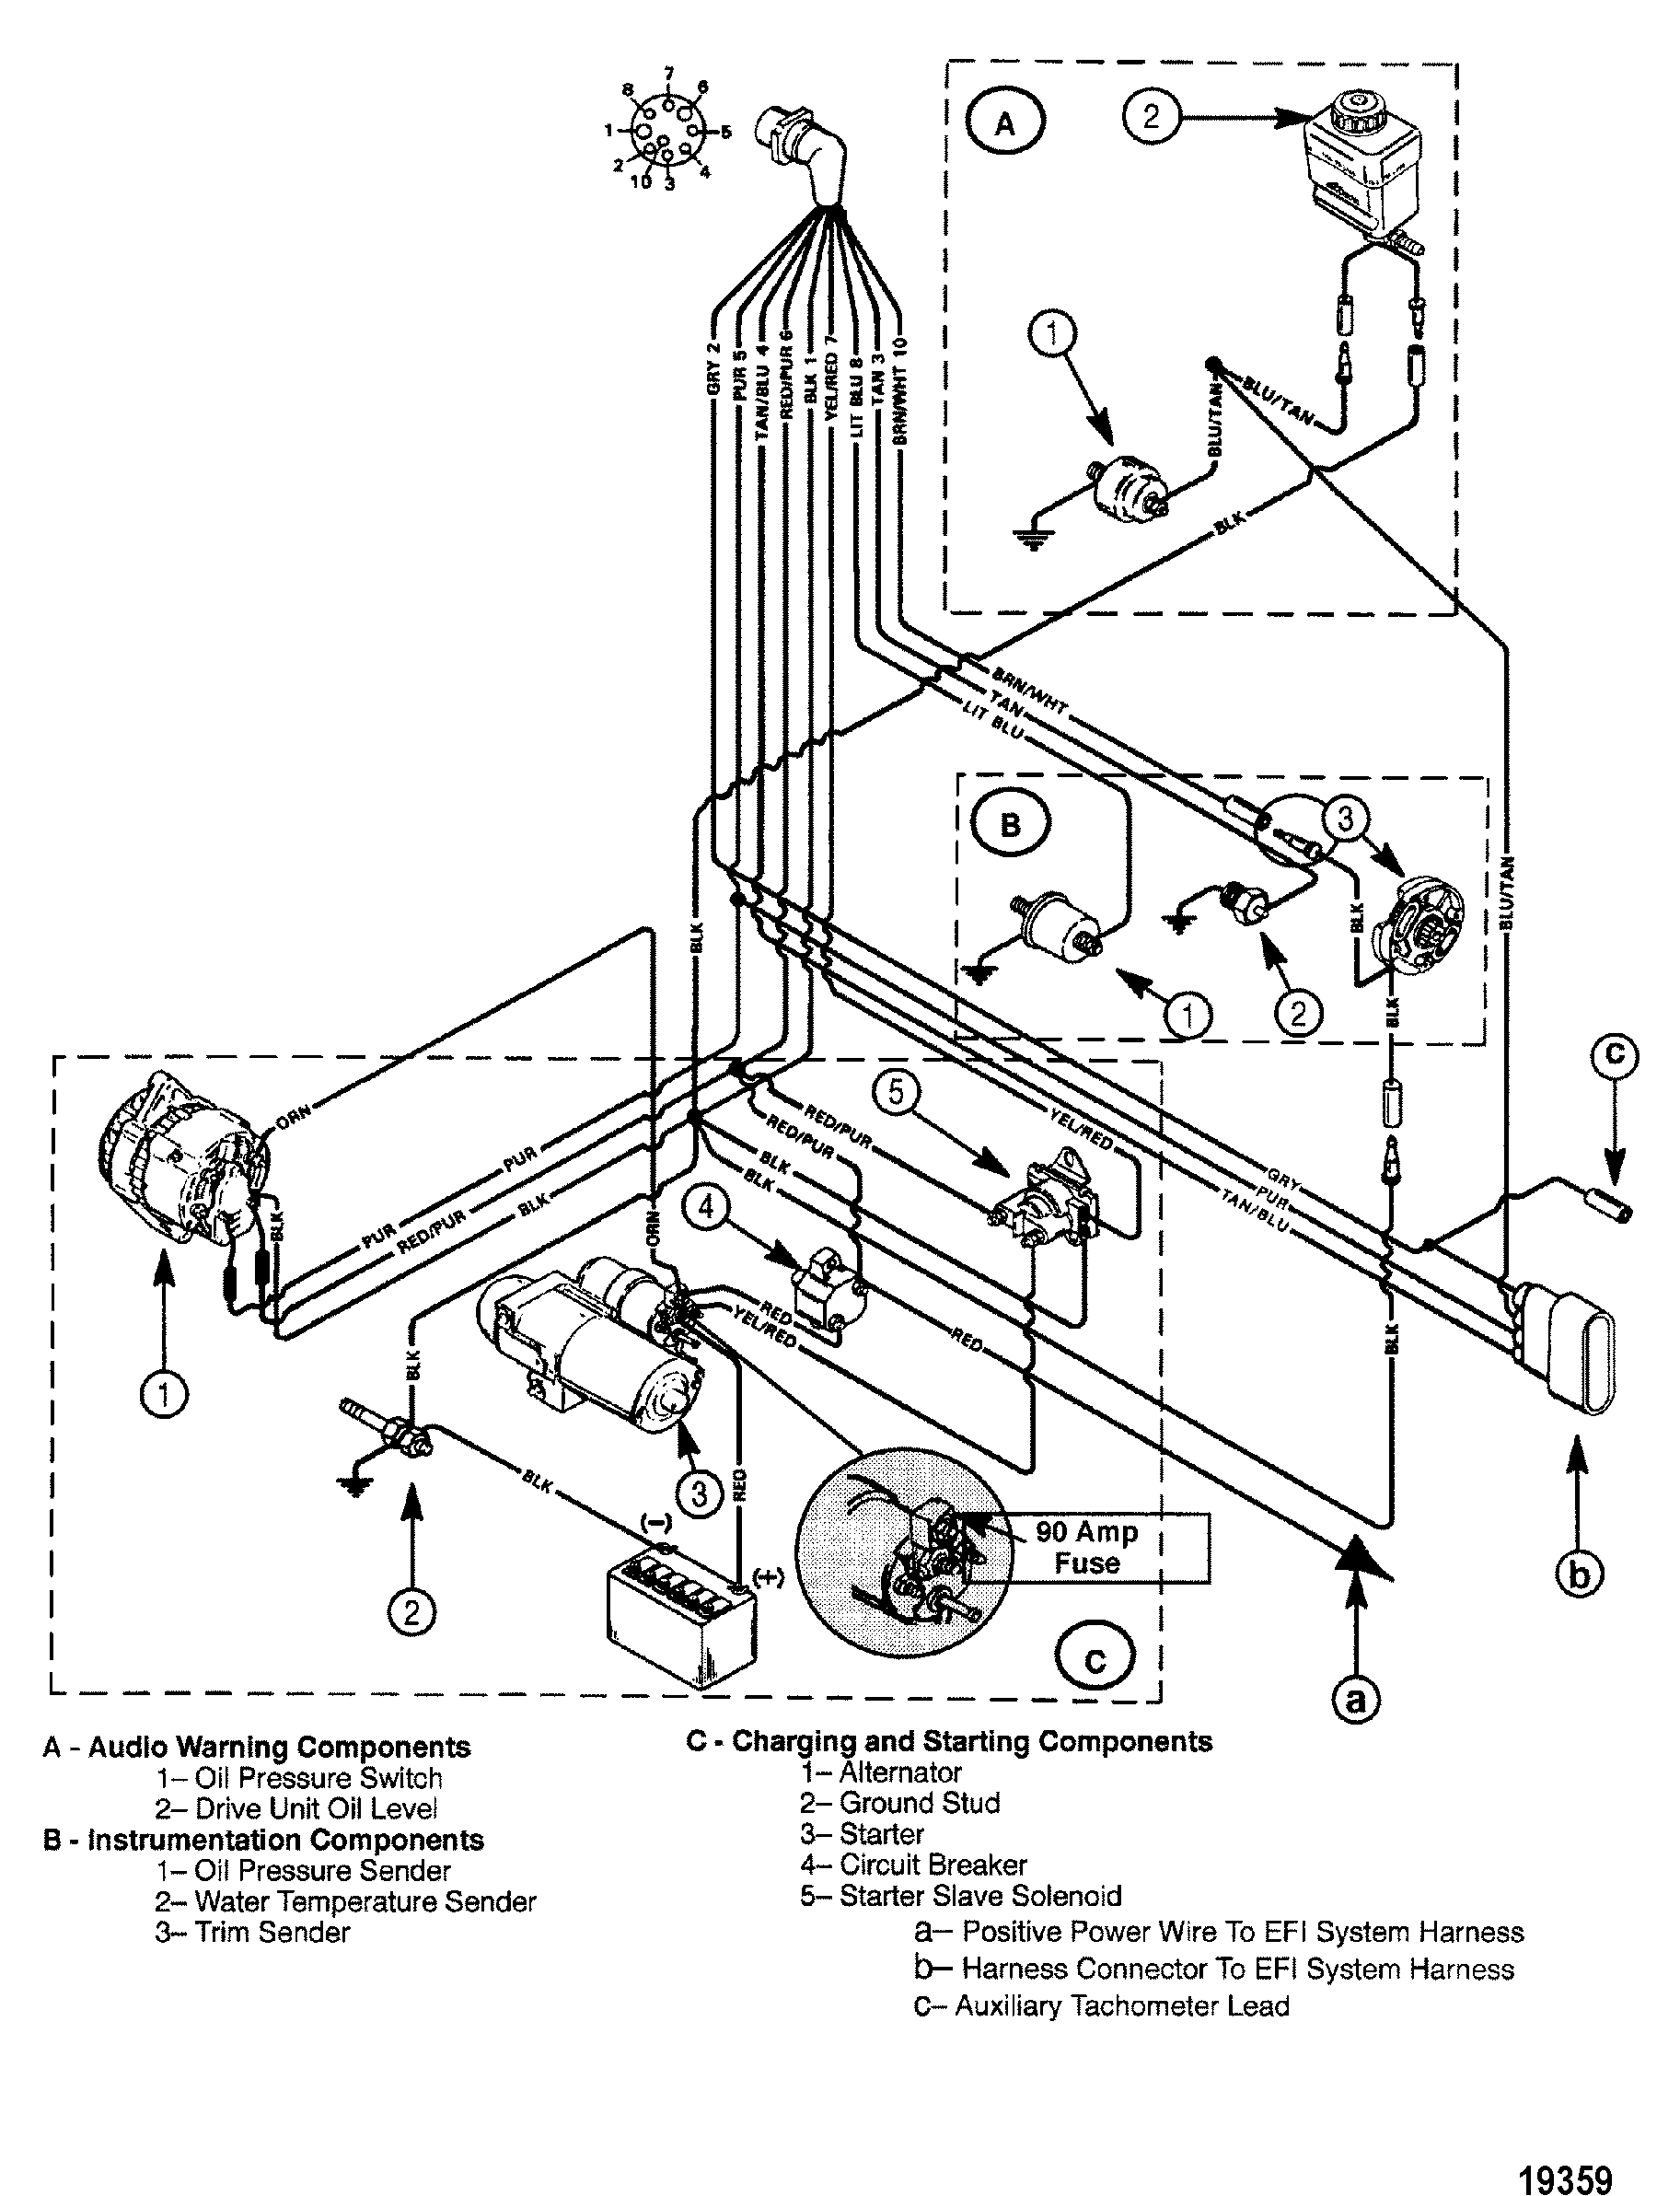 19359?resize\\\\\\\\\=665%2C869 diagrams 1265880 lincoln versailles wiring diagram lincoln 78 lincoln continental wiring diagram at n-0.co